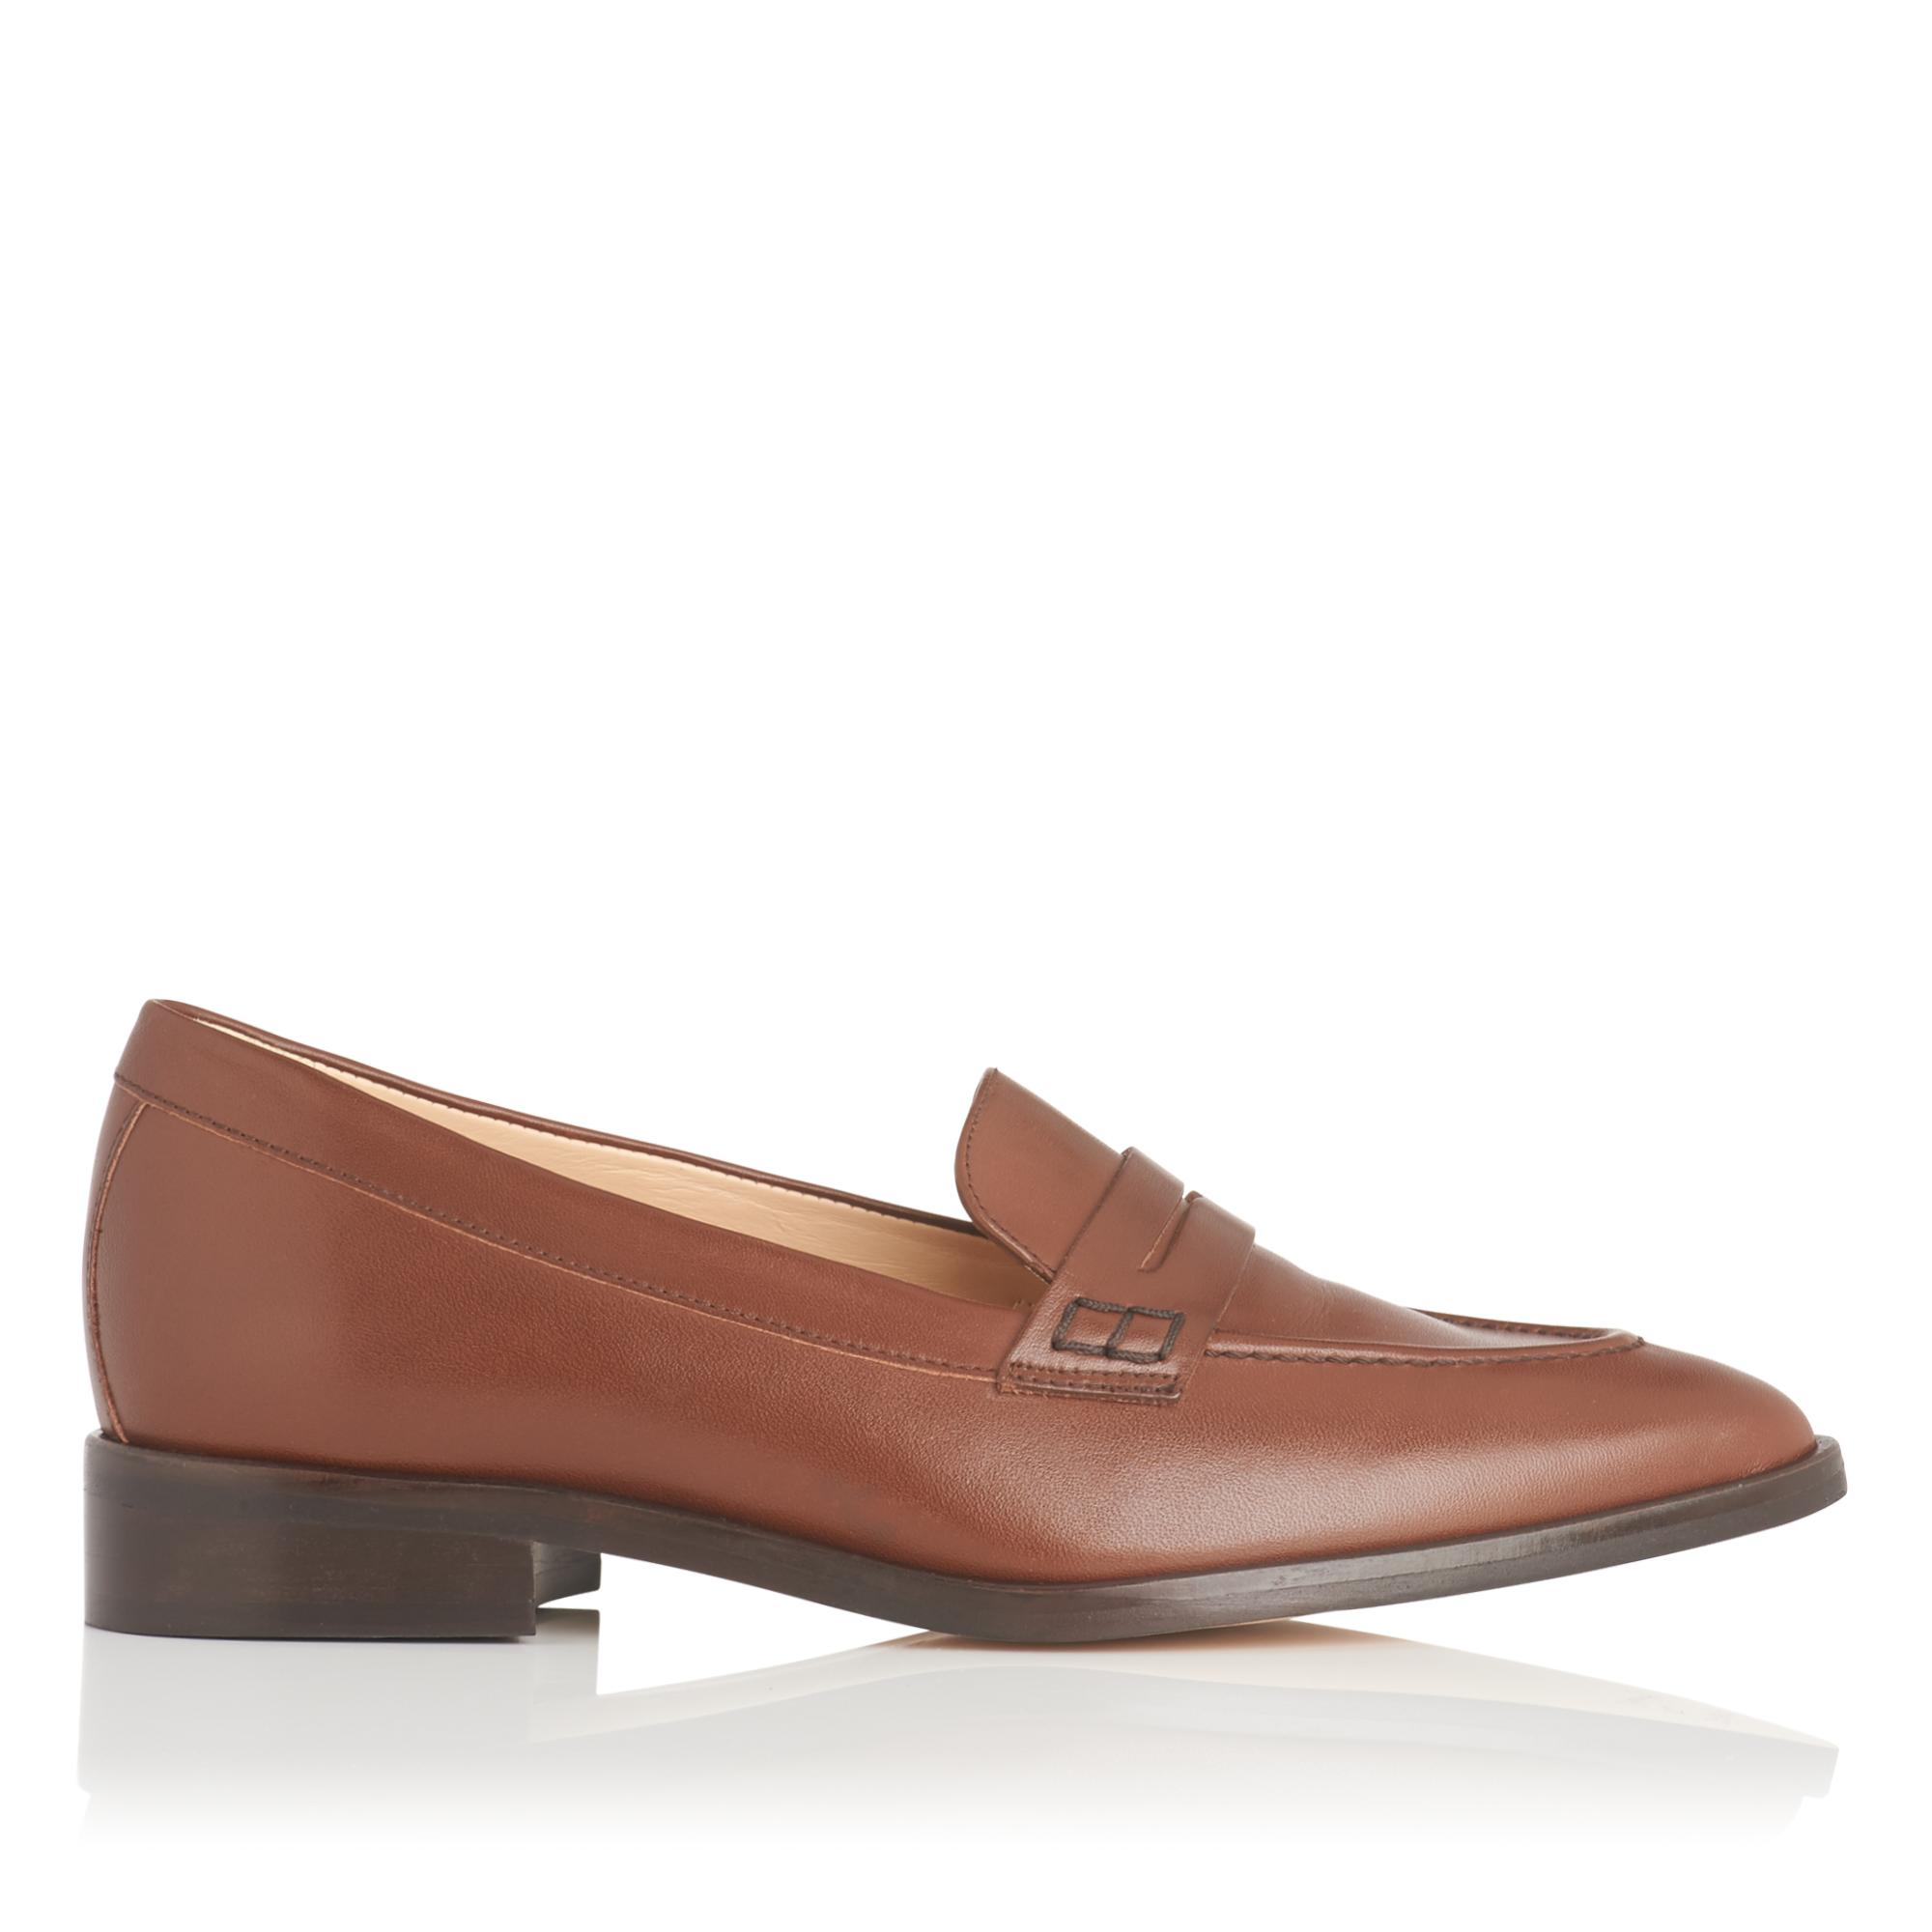 Iona Brown Leather Flats